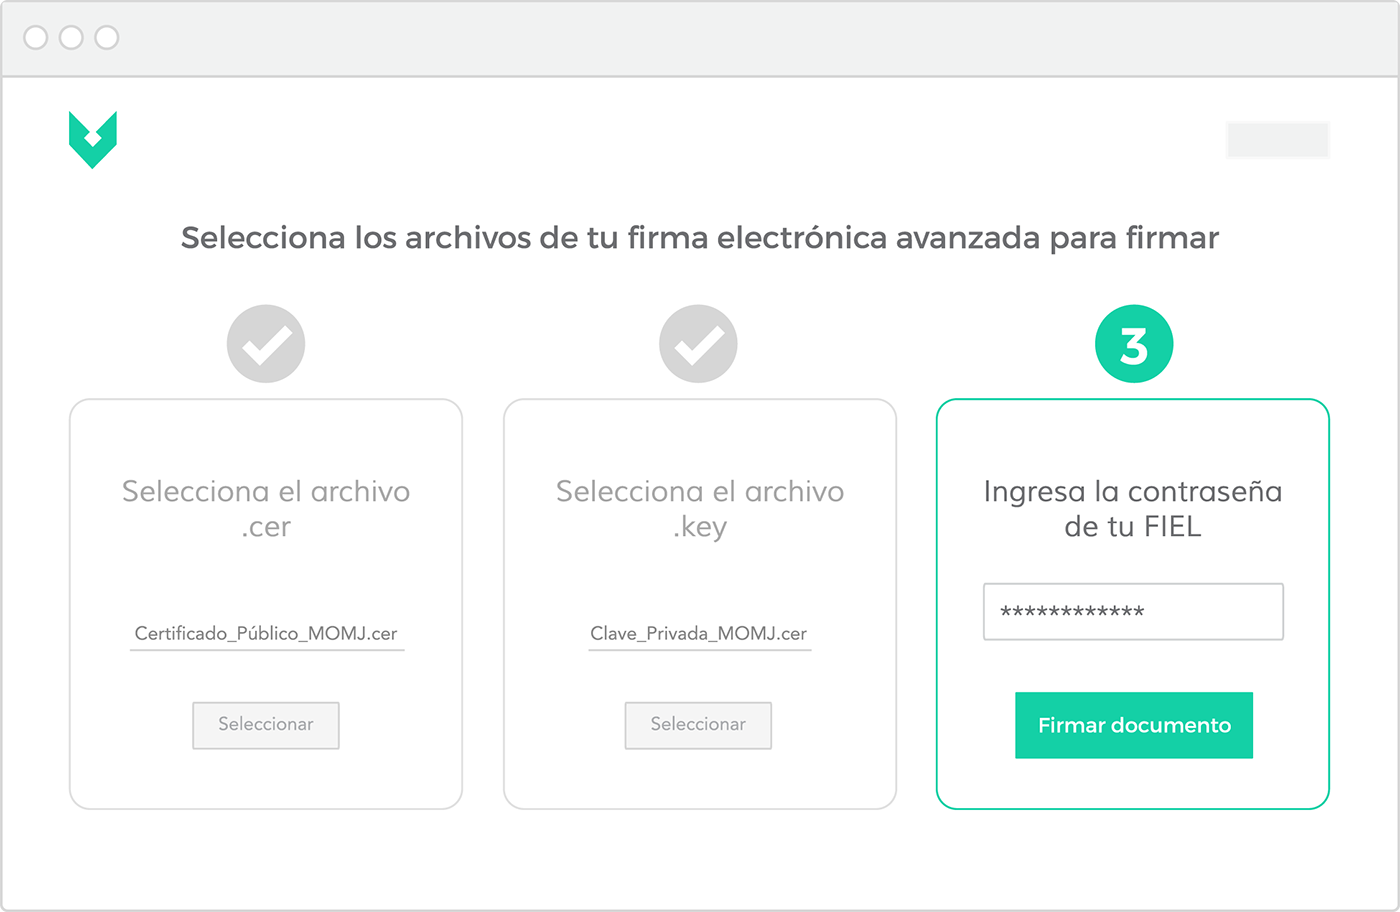 como puedo firmar un documento digitalmente